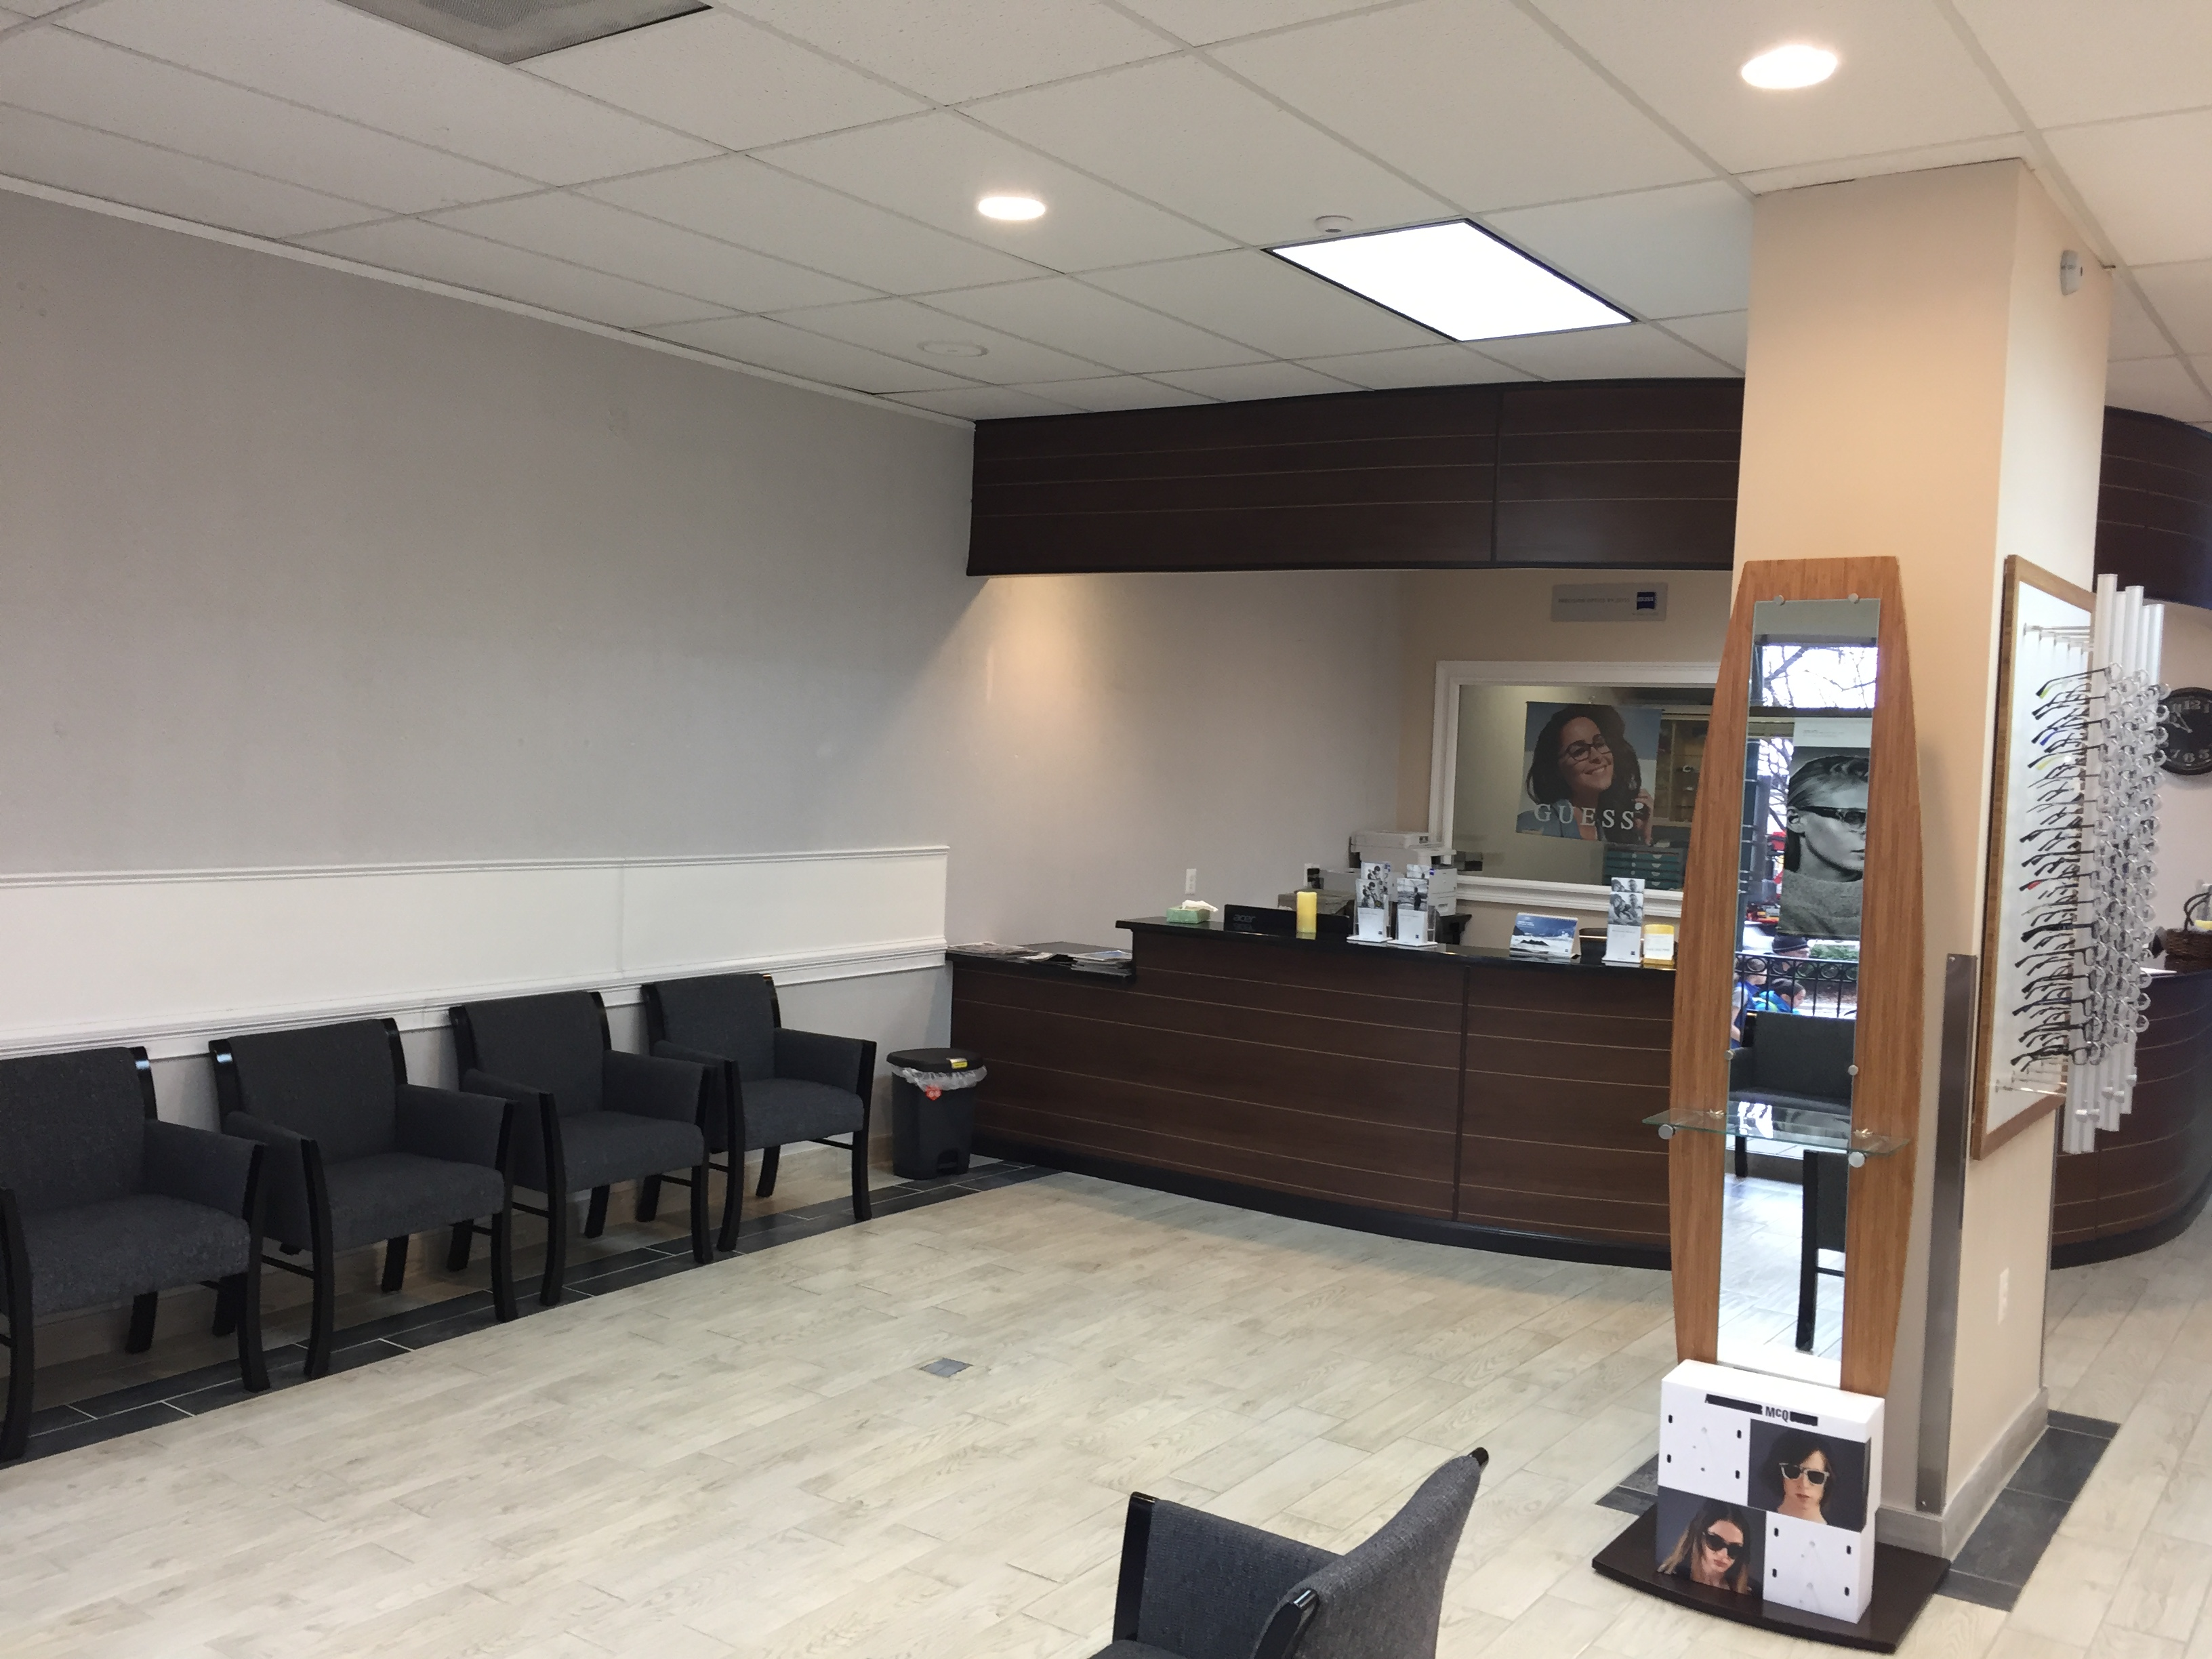 american eye care center in silver spring md 20910. Black Bedroom Furniture Sets. Home Design Ideas